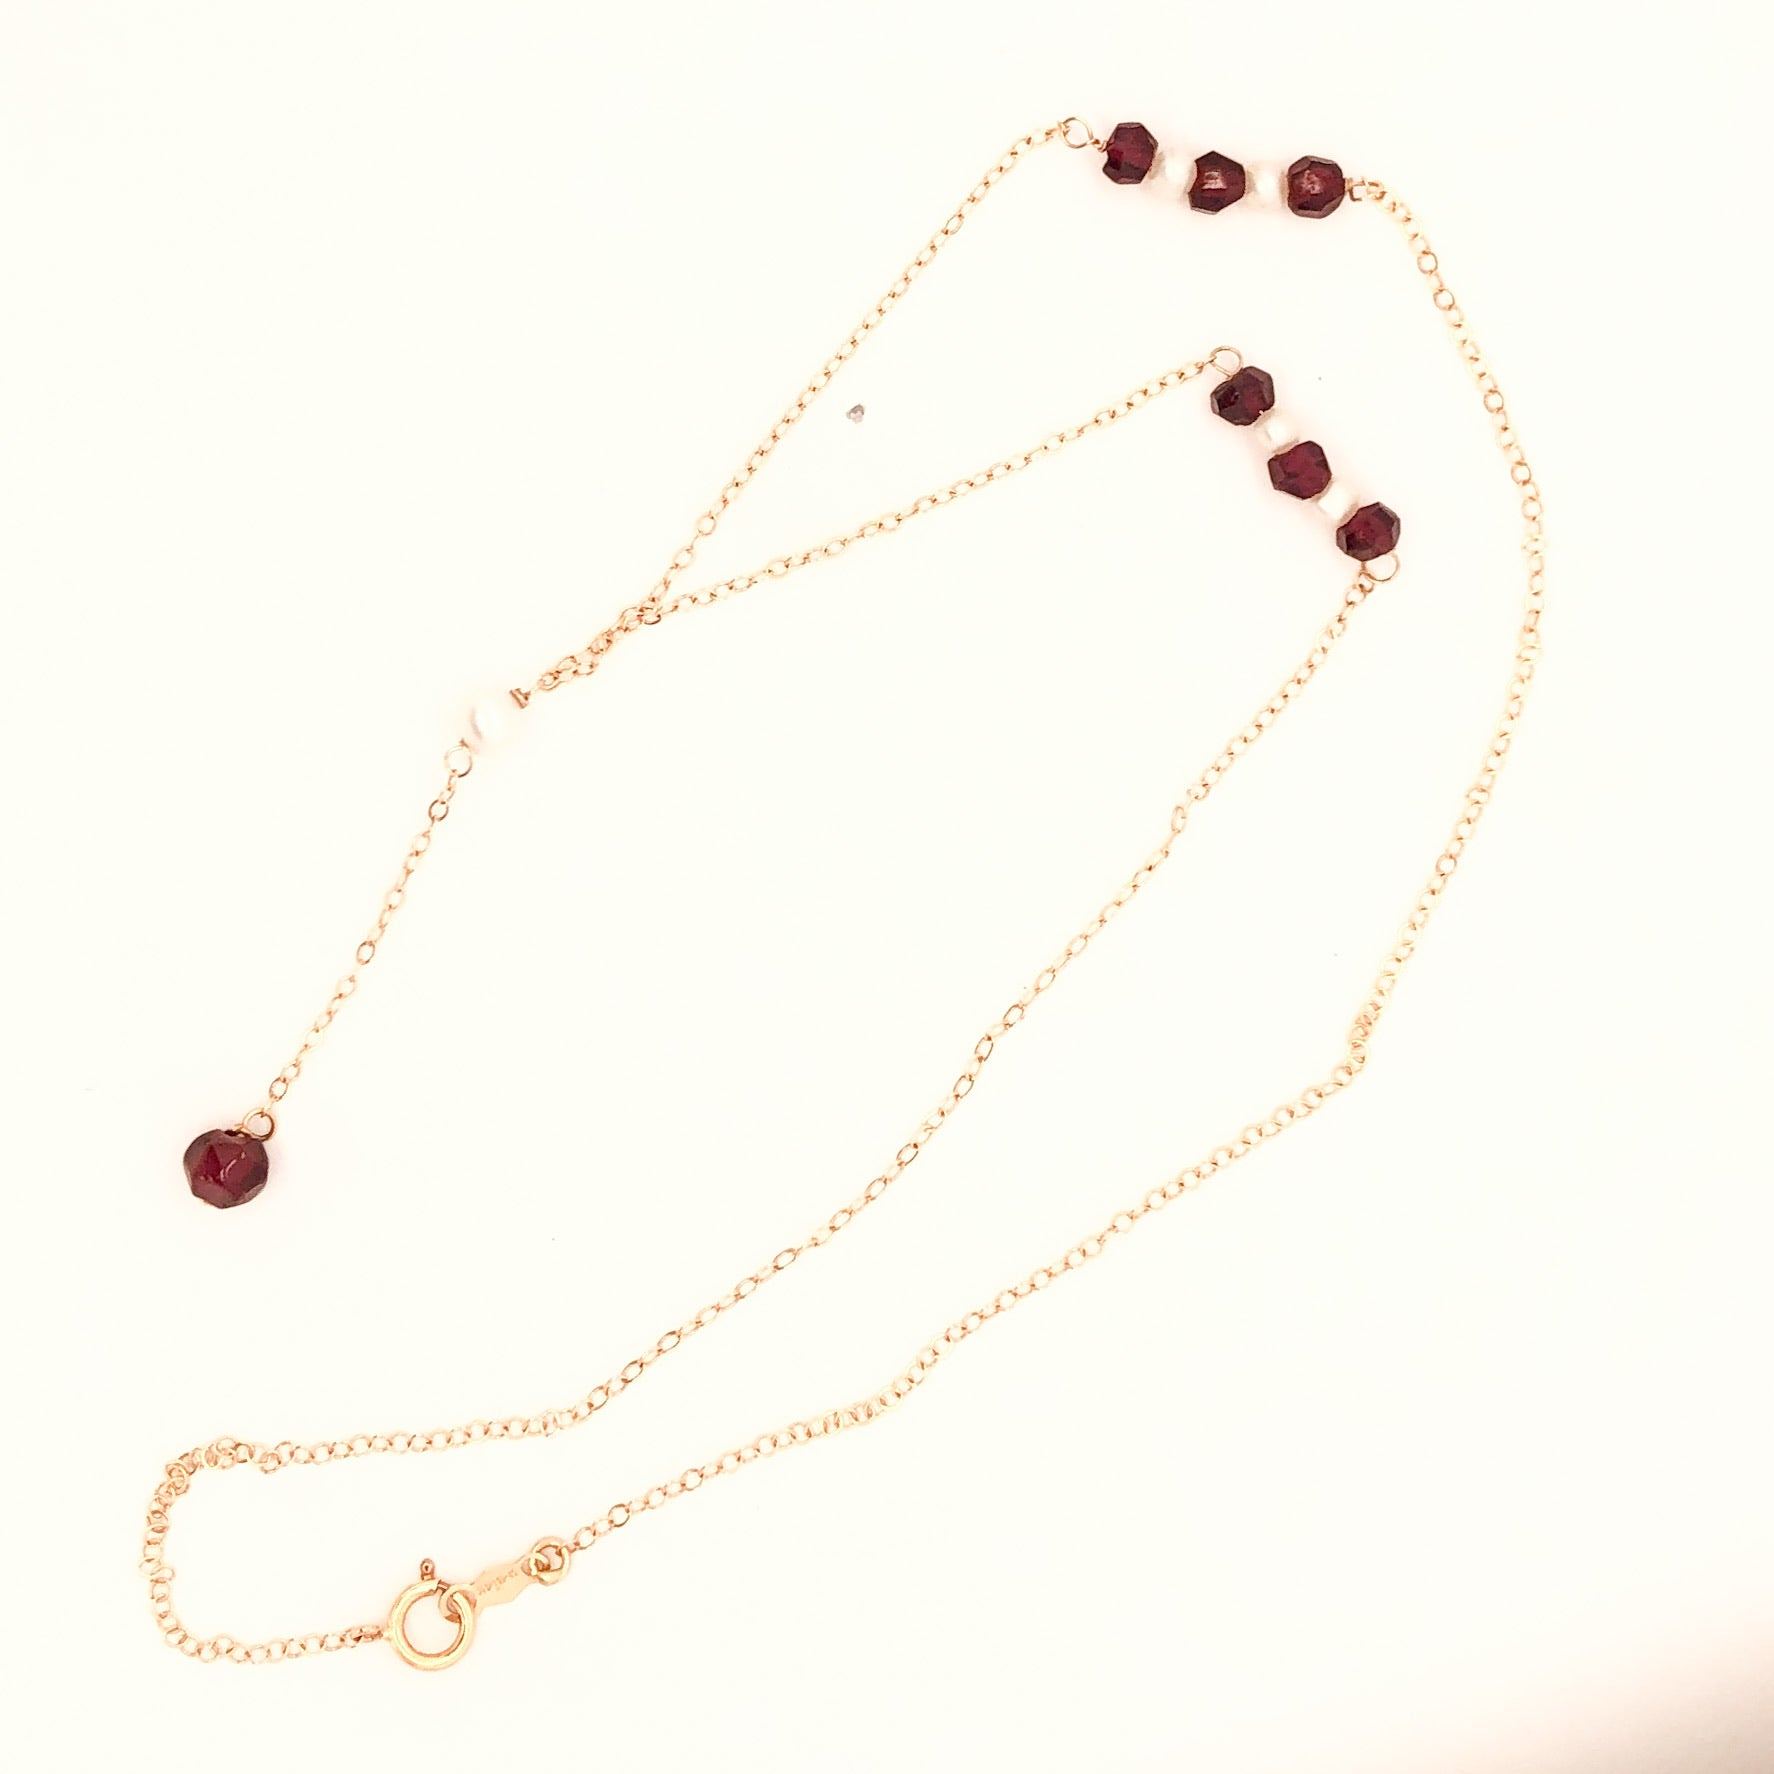 14K Yellow Gold Garnet and Pearl Necklace  CN0061